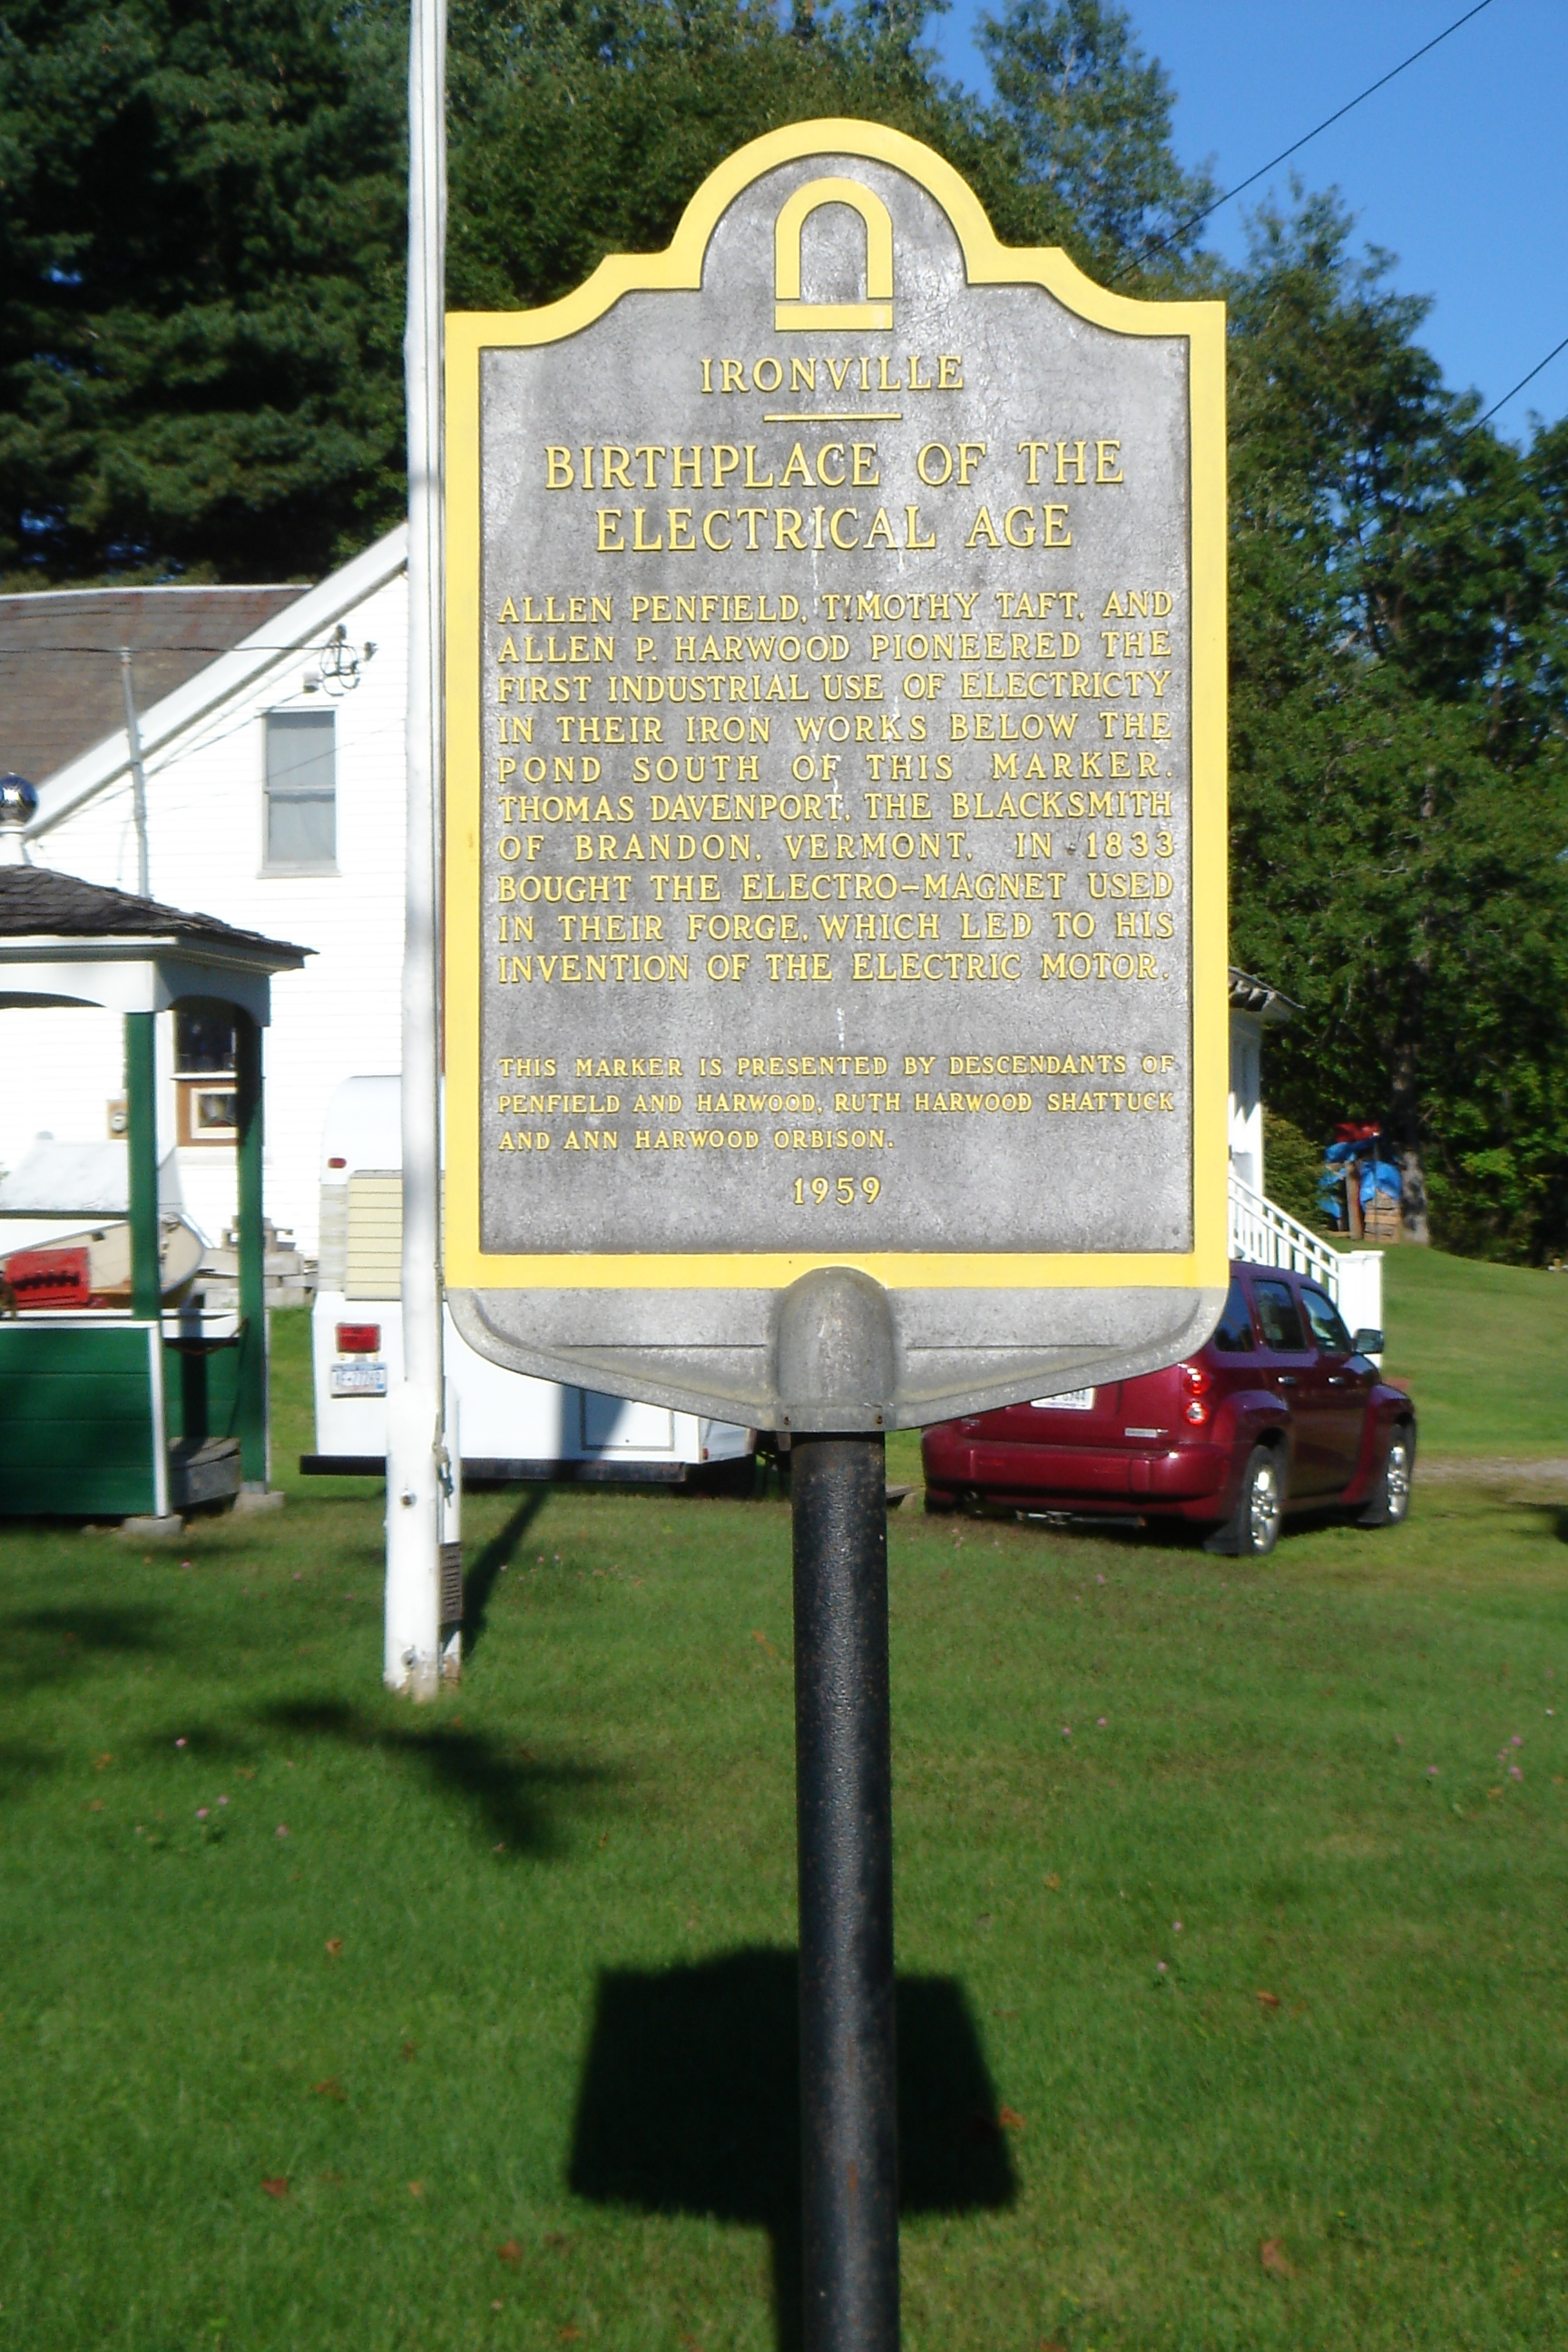 Ironville - Birthplace of the Electrical Age Marker